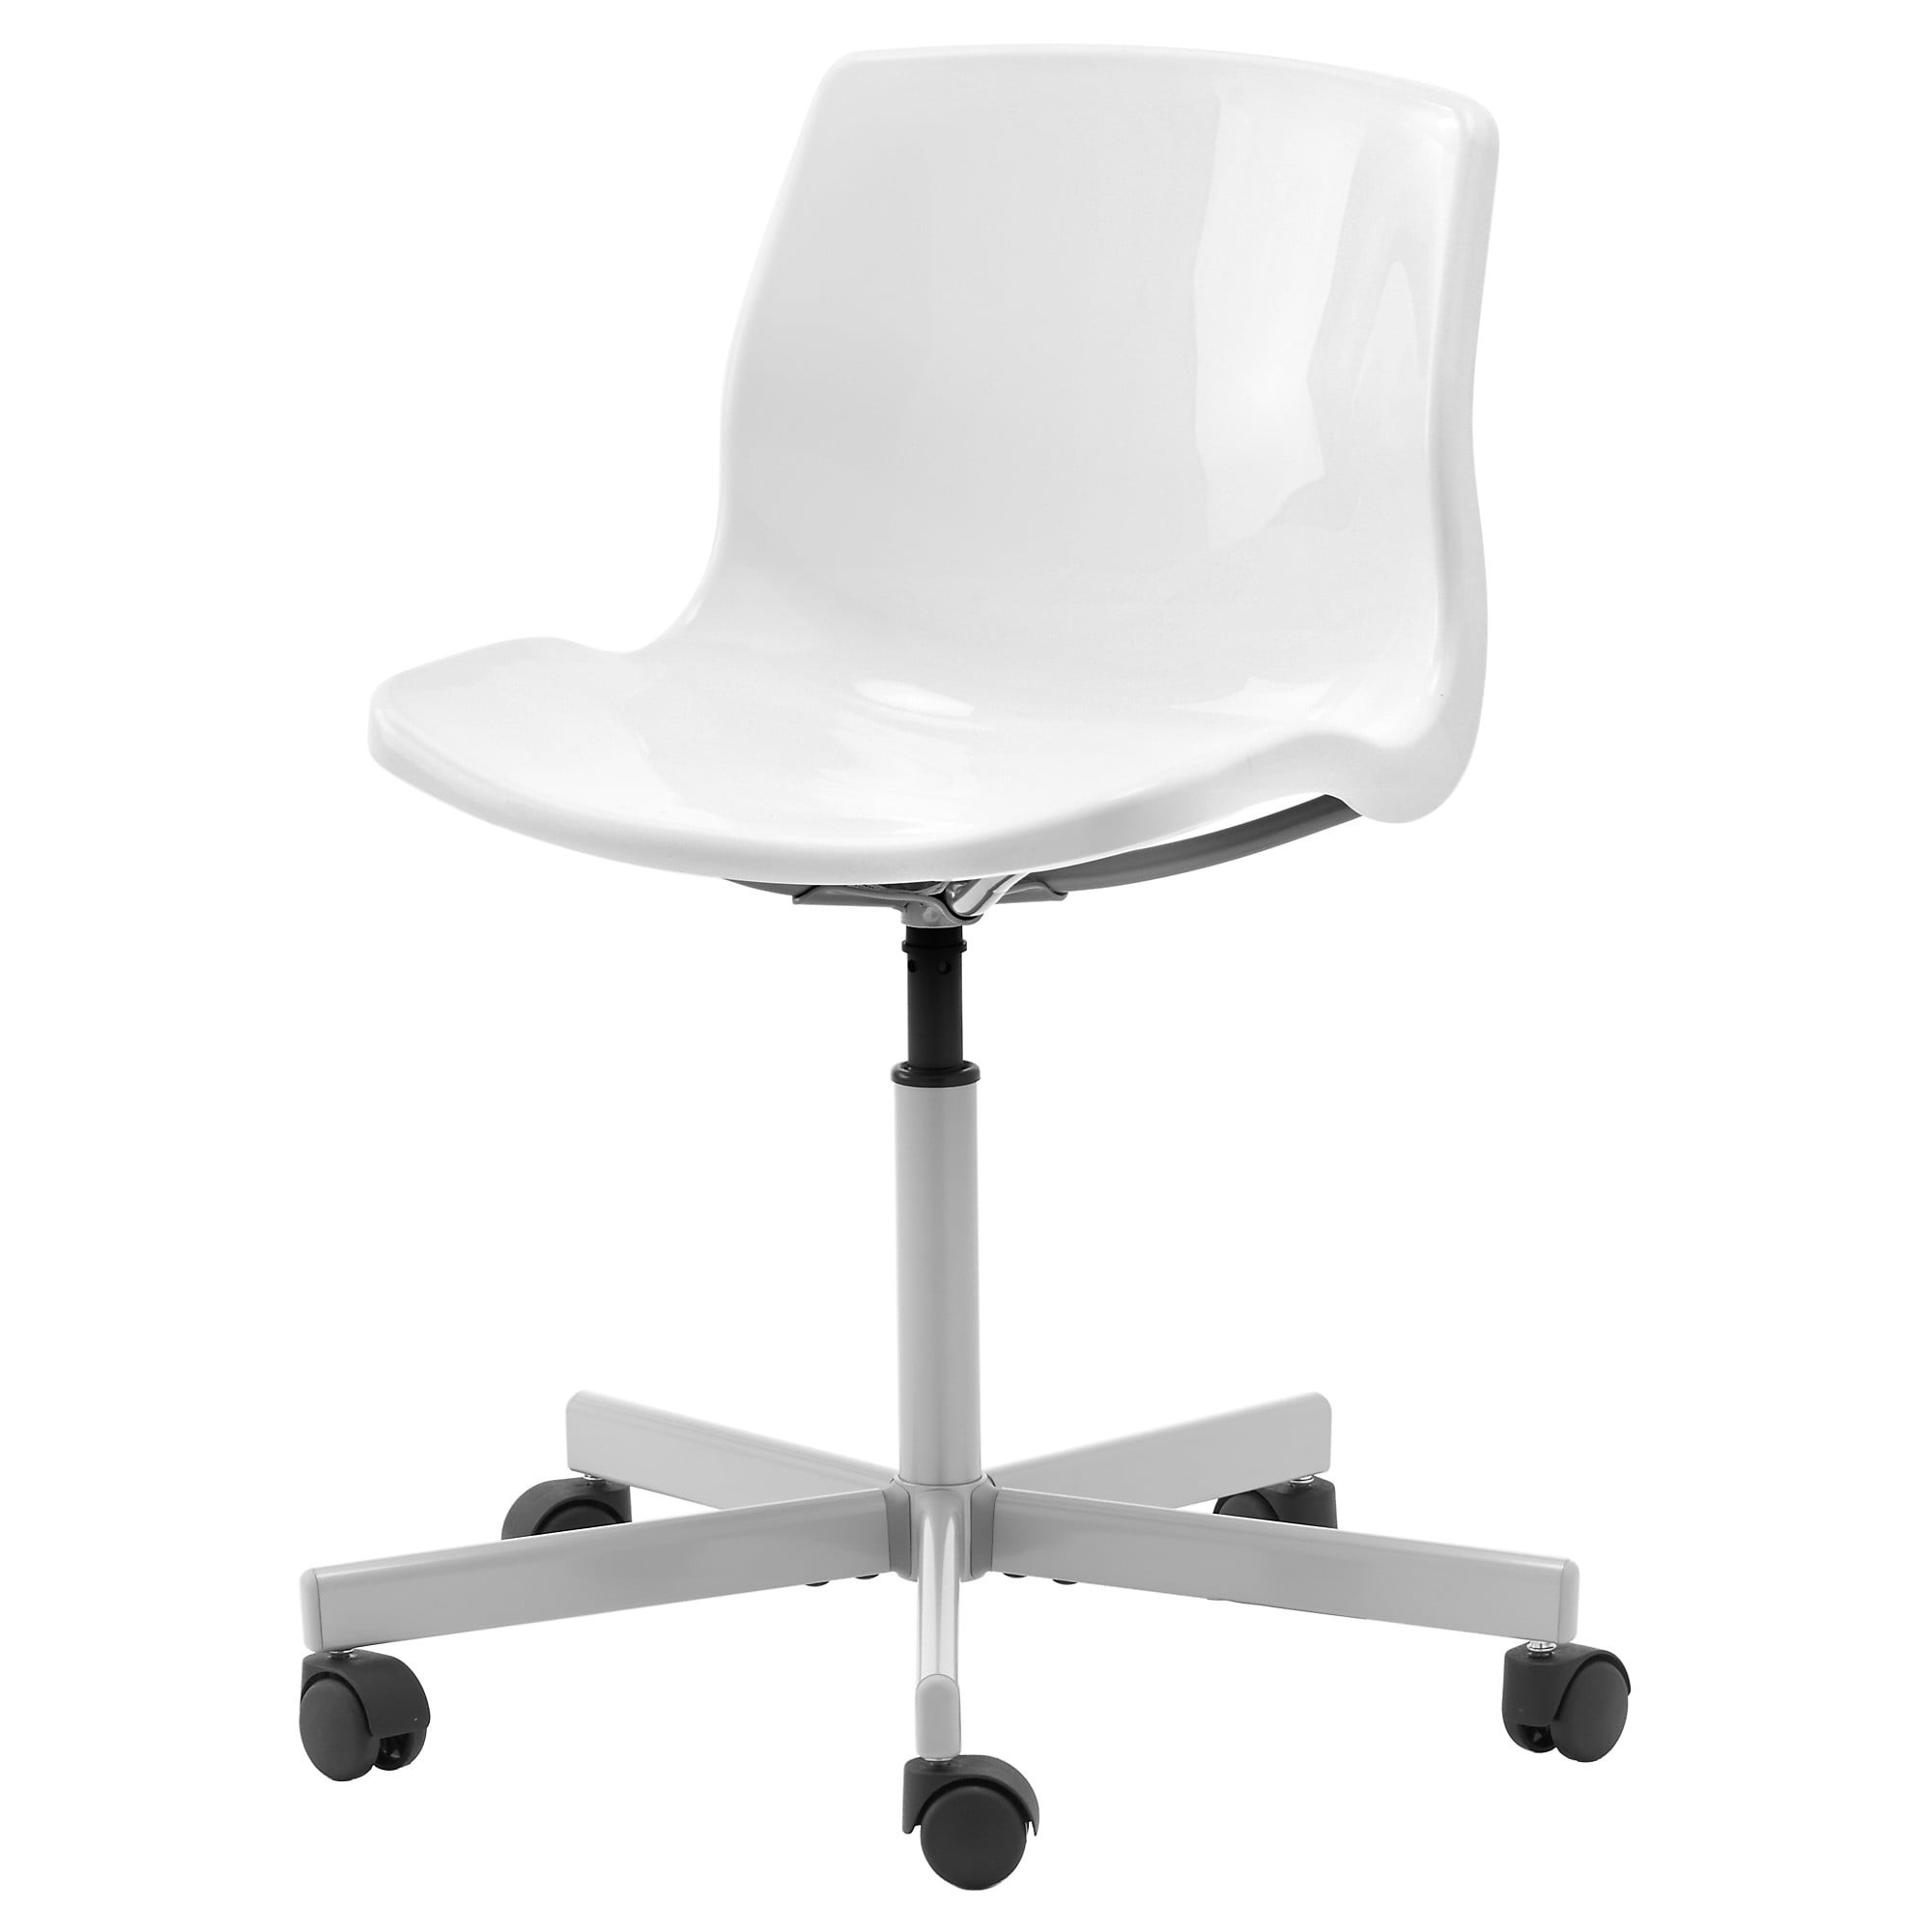 Best ideas about White Desk Chair . Save or Pin SNILLE Swivel chair White IKEA Now.